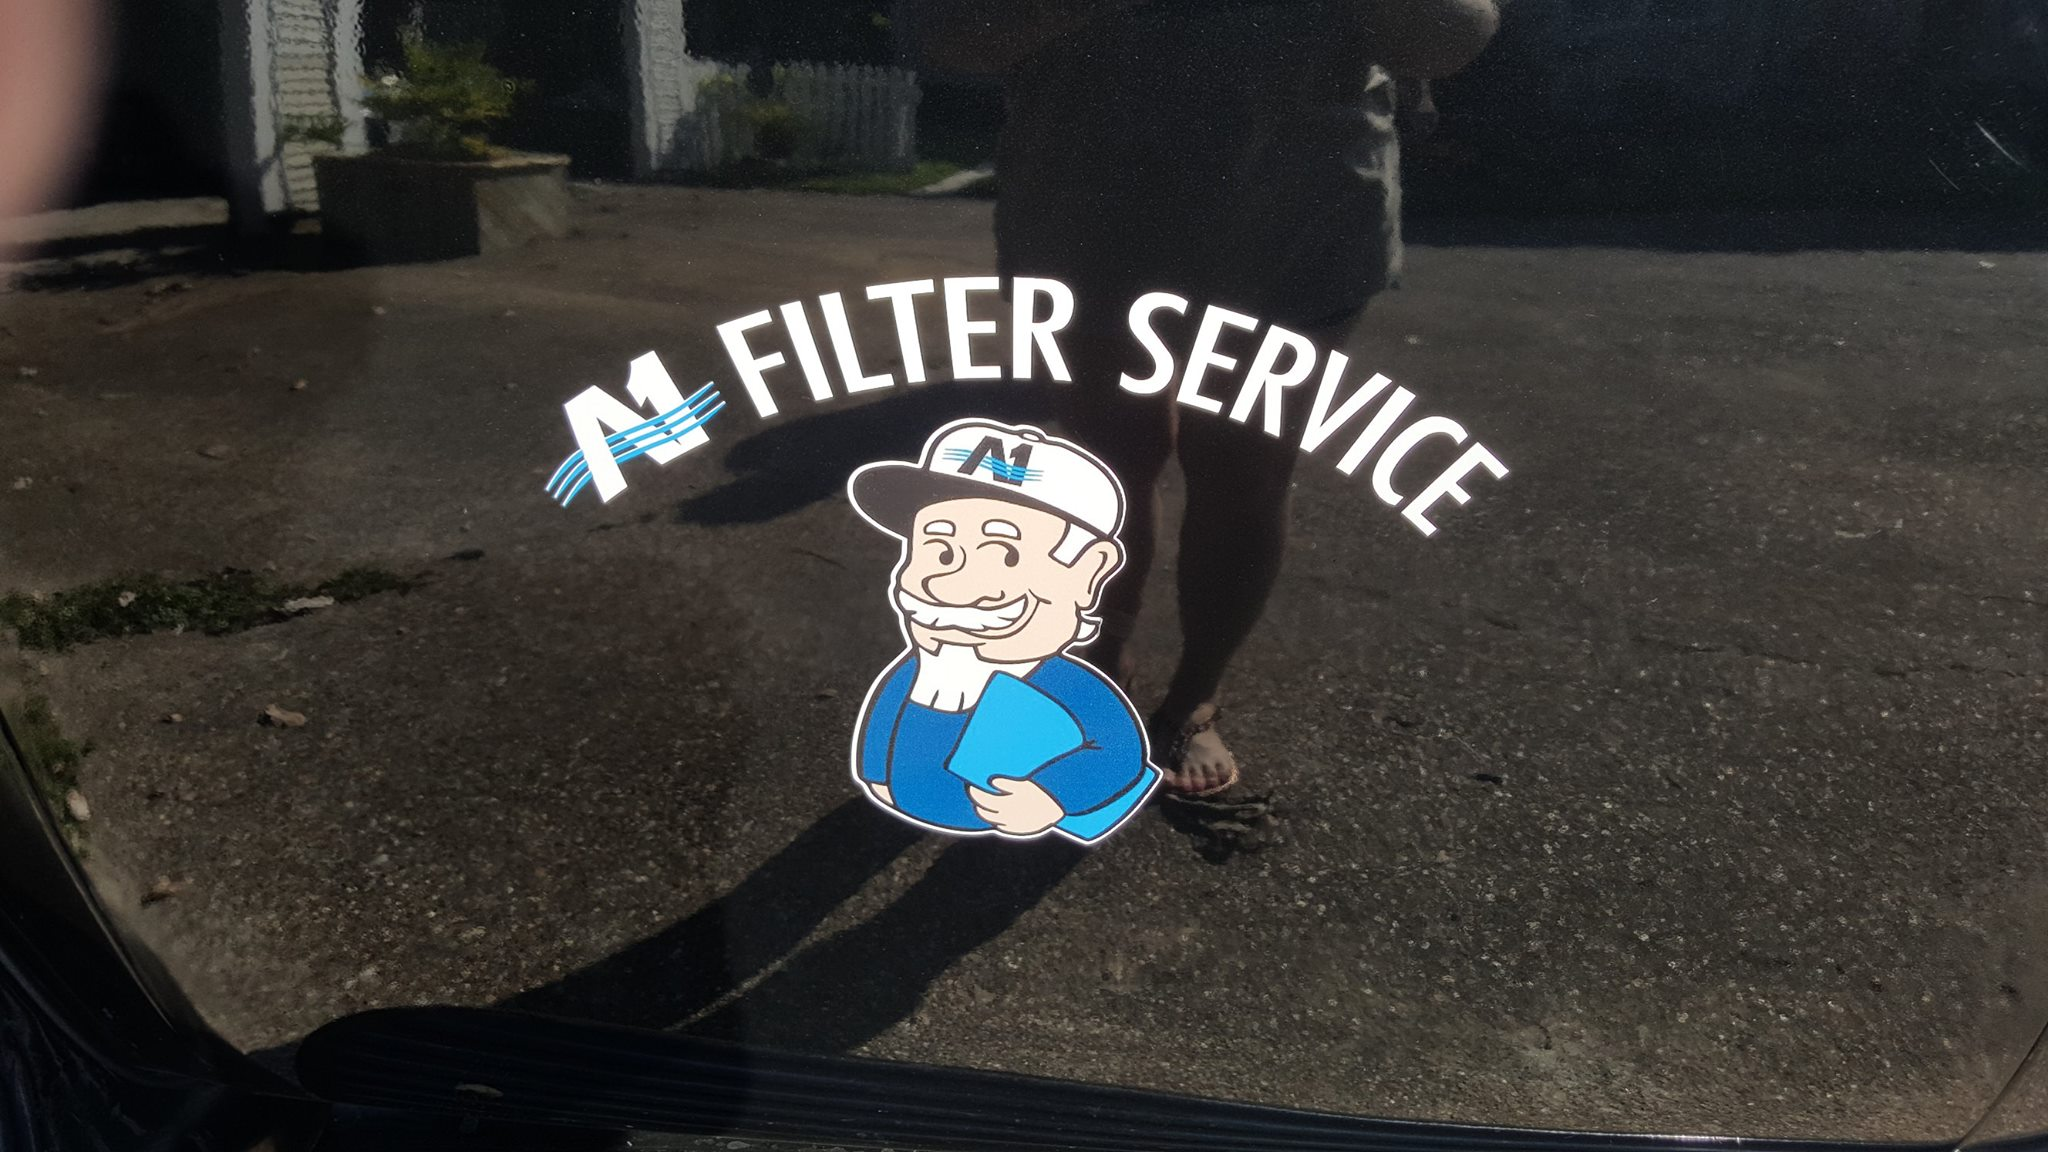 commercial AC filter Beaumont TX, commercial AC Filter SETX, commercial AC filters Houston, metal frame AC filters Houston, AC filter Service Baytown, Commercial AC filters Baytown TX